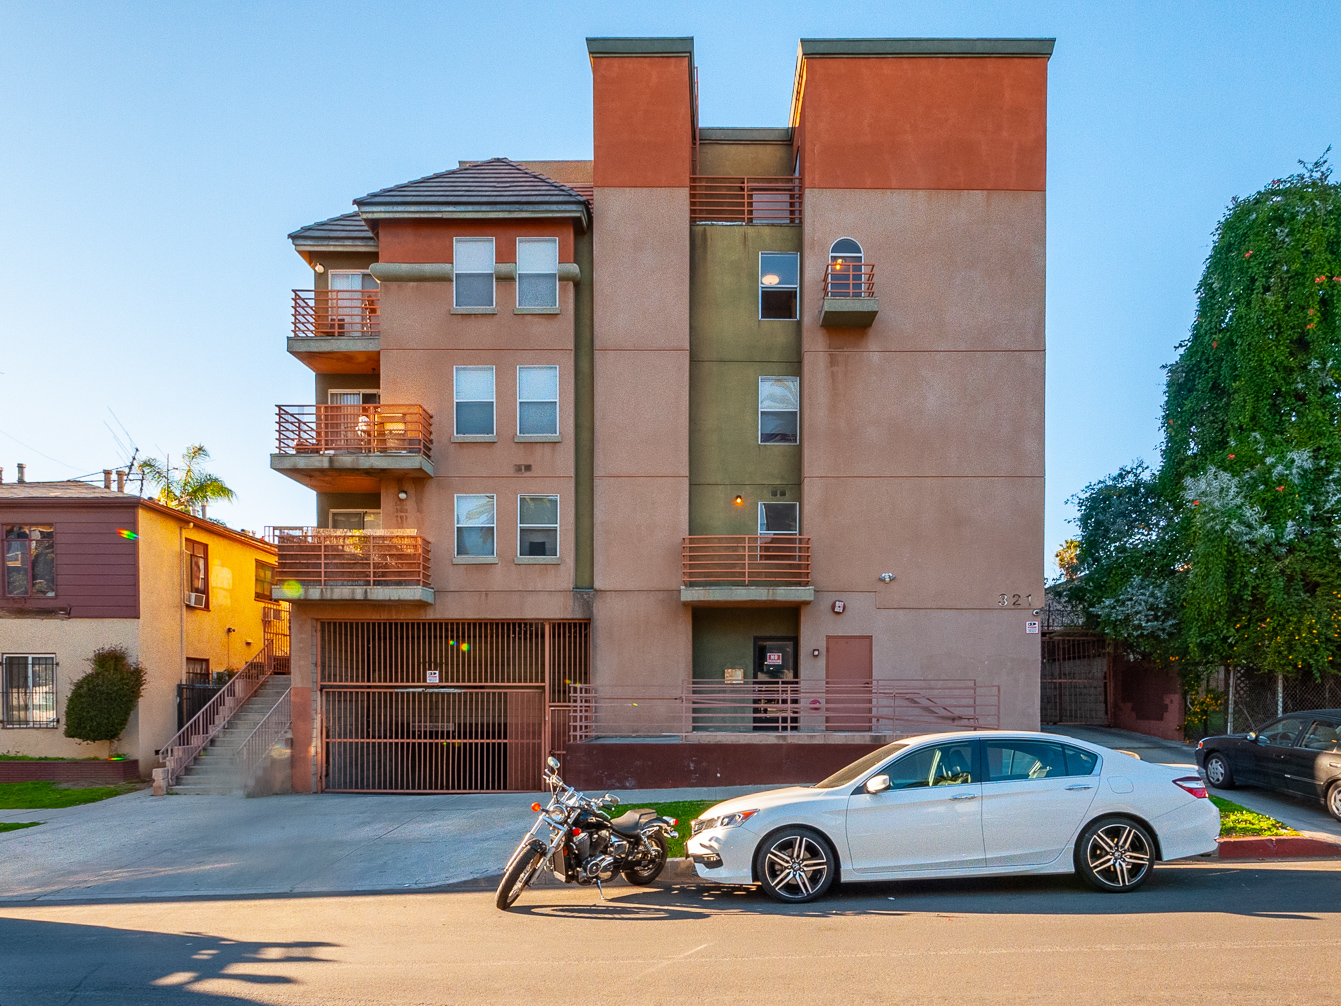 Rare 2 Story 2 Bed | 2 Private Balconies | 2 Parking Spots Included! | Central AC